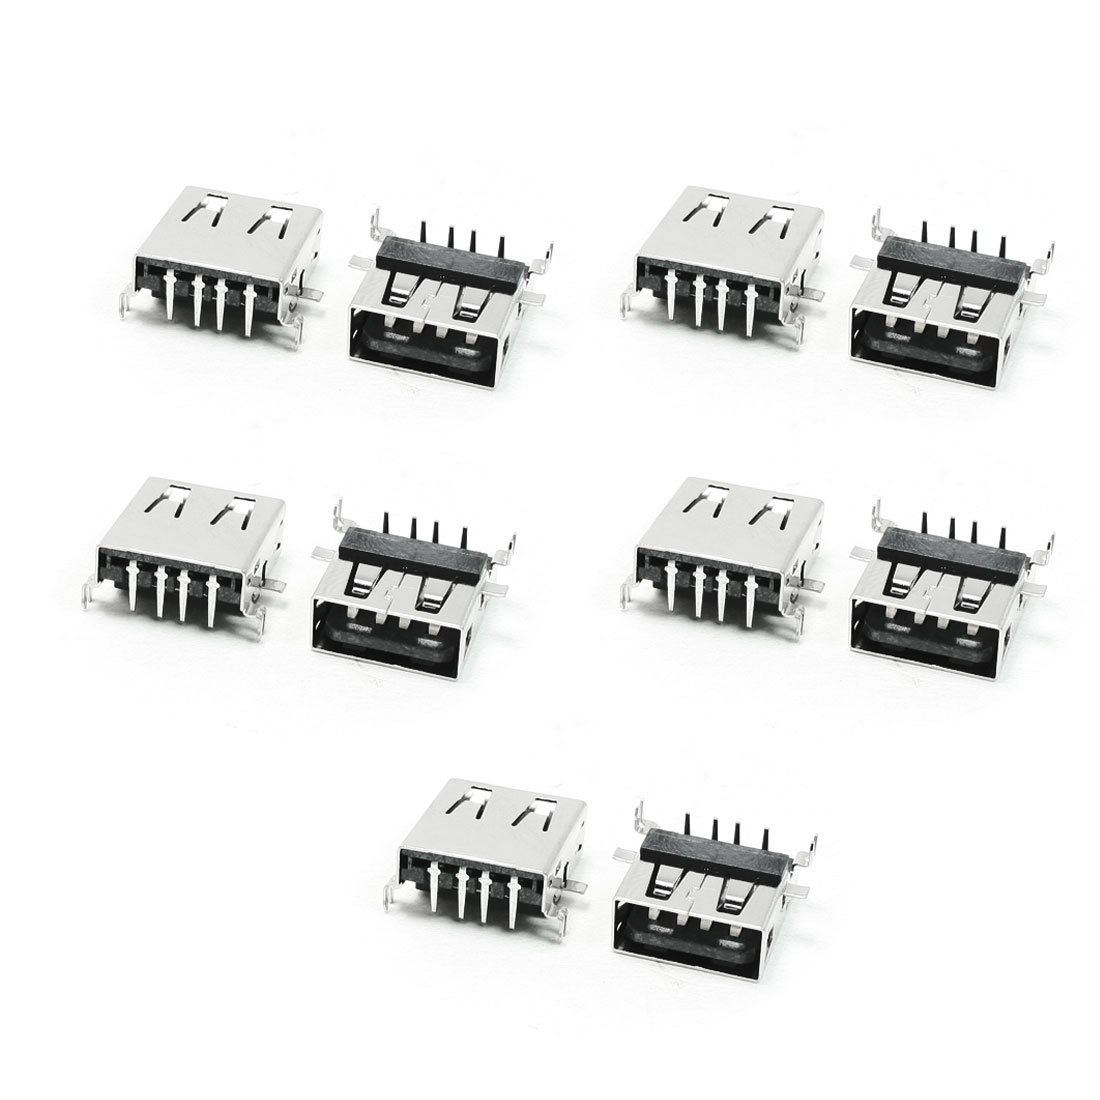 Type A USB 2.0 4 Pin Female Jack Connector Port Replacement 10 Pcs